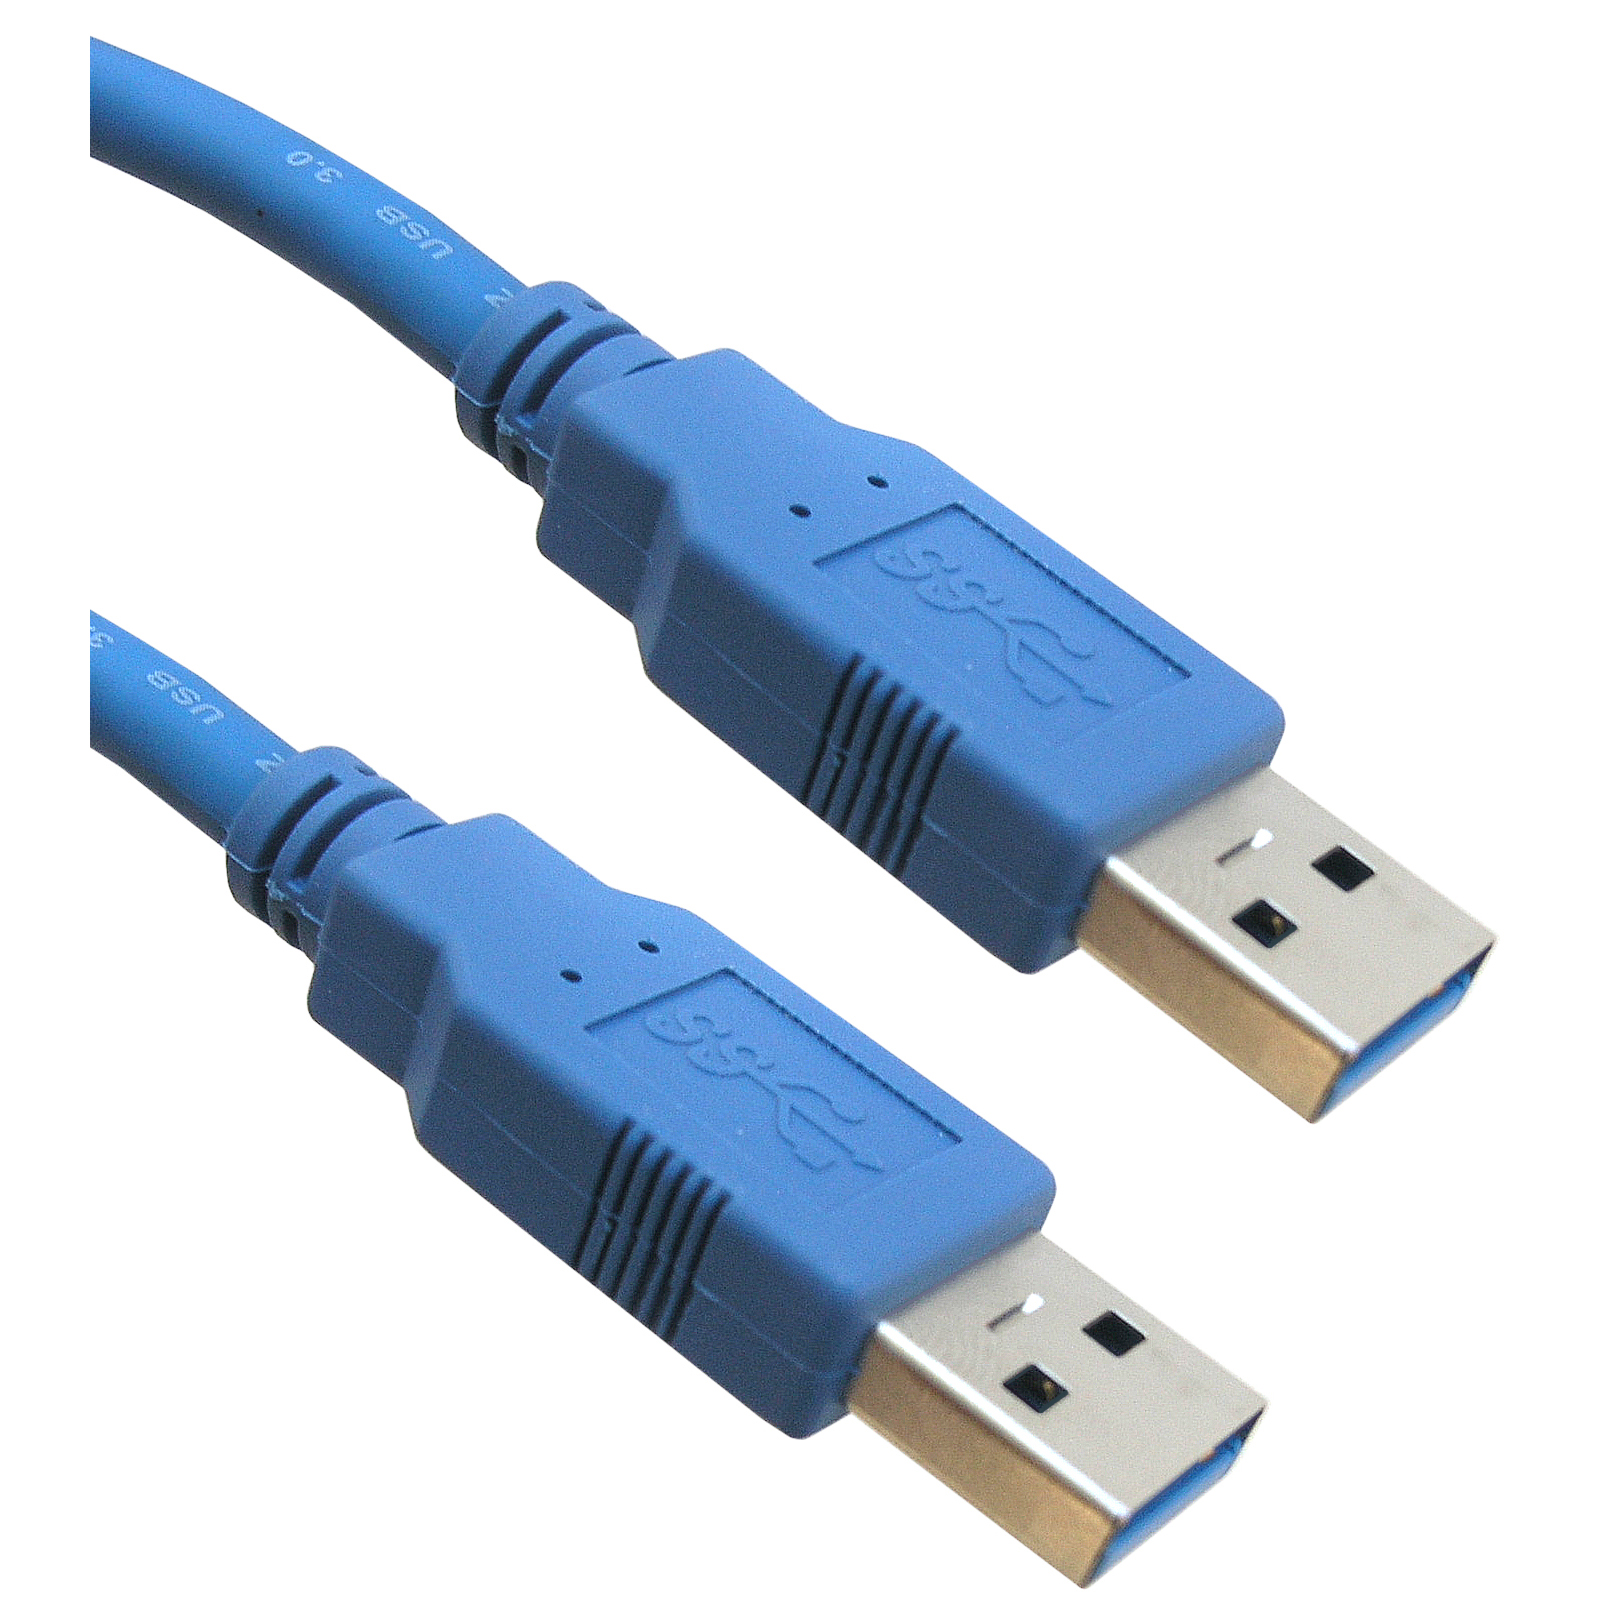 3ft USB 3.0 Cable | Blue | Type A to Type A | Male/Male